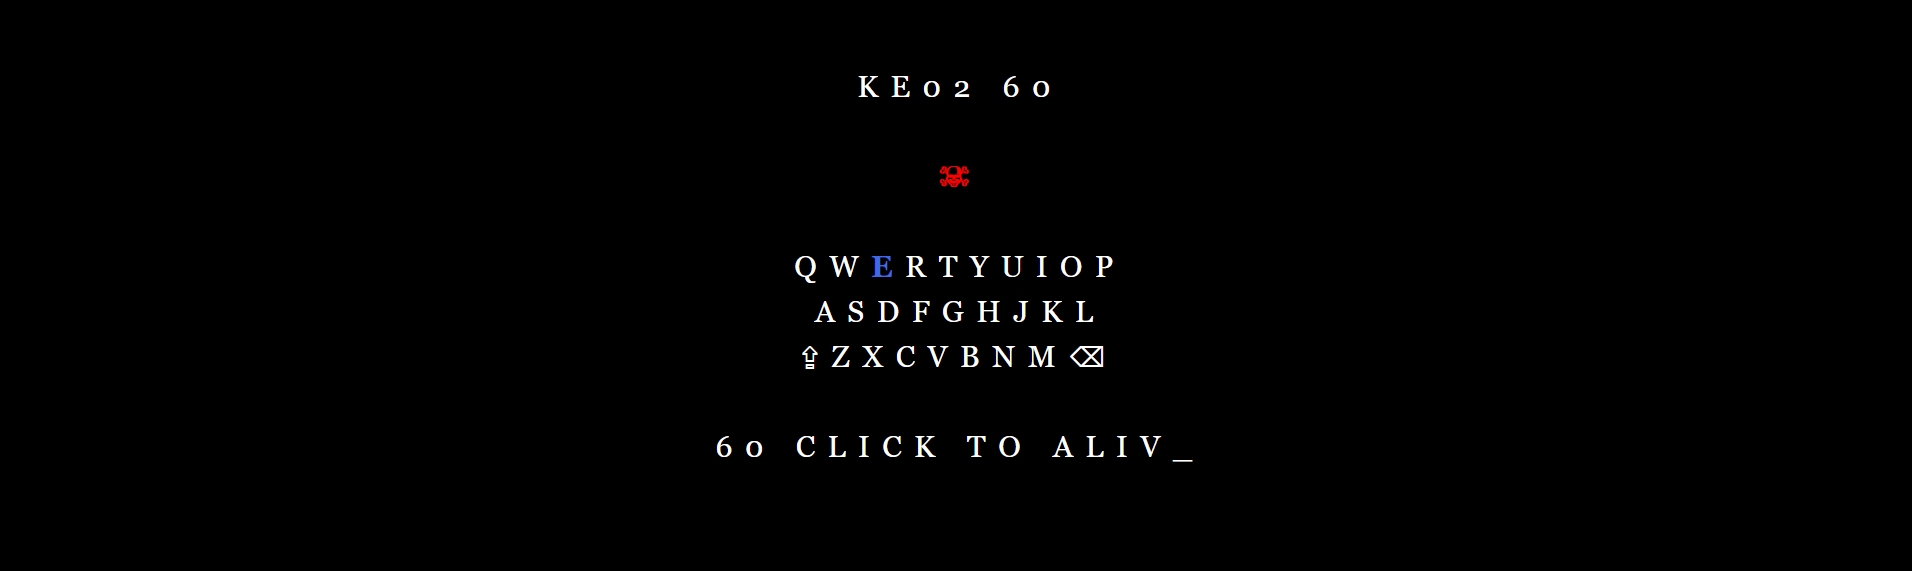 60 Click To Alive